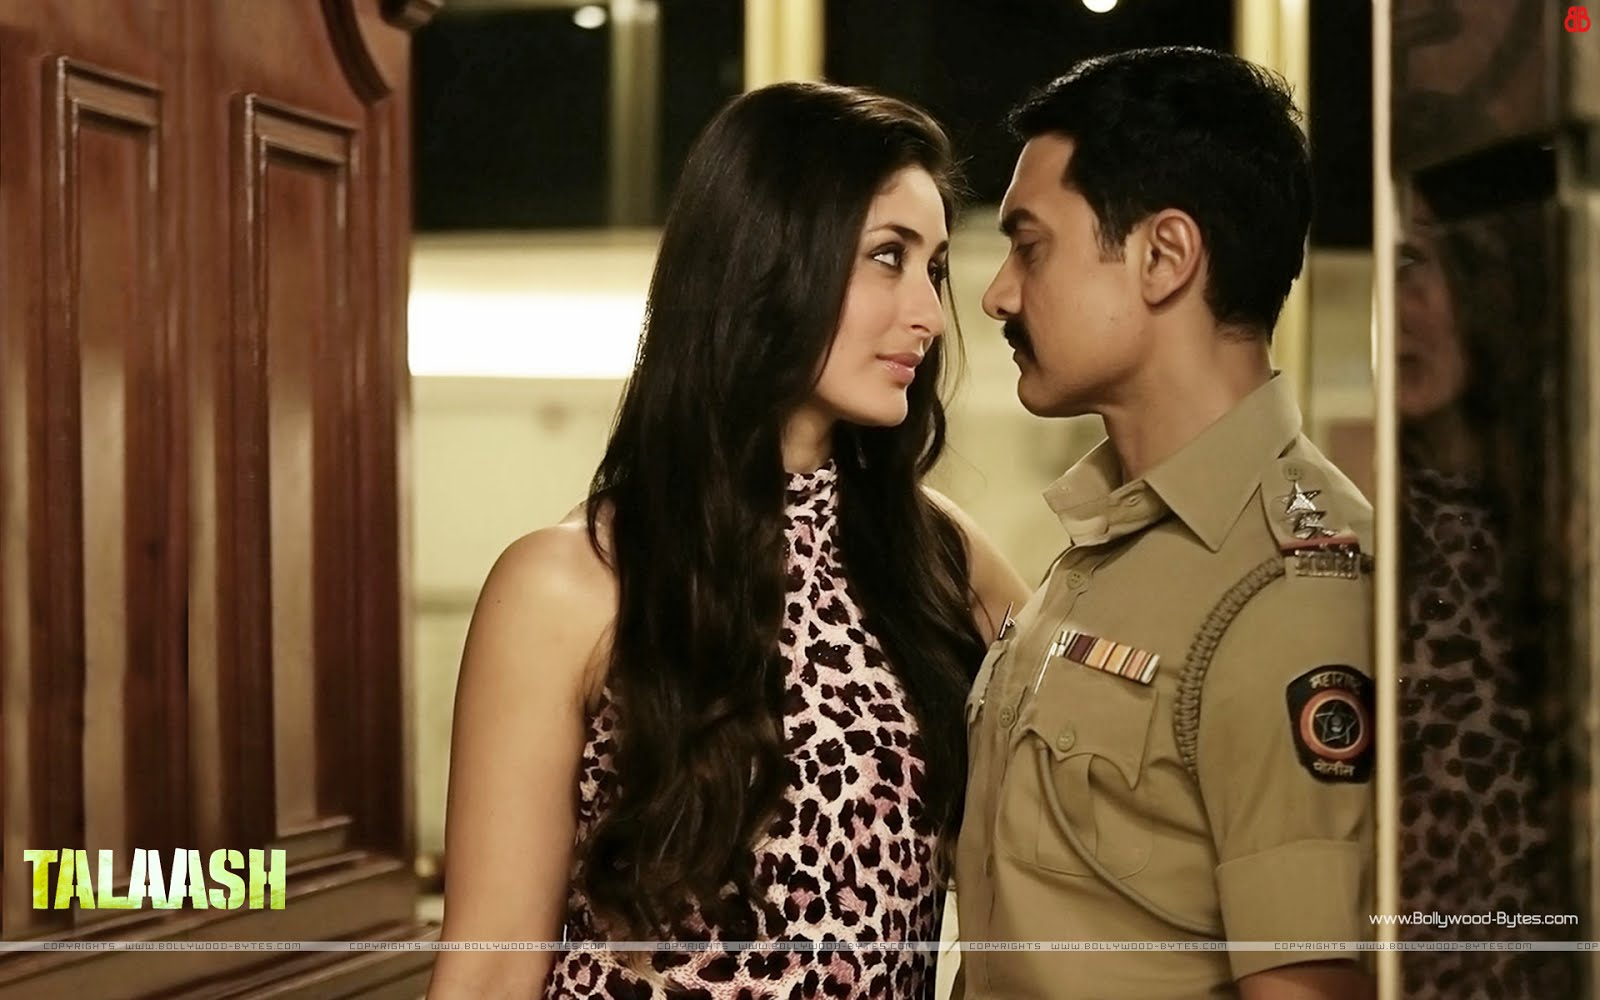 tal video hd movie song